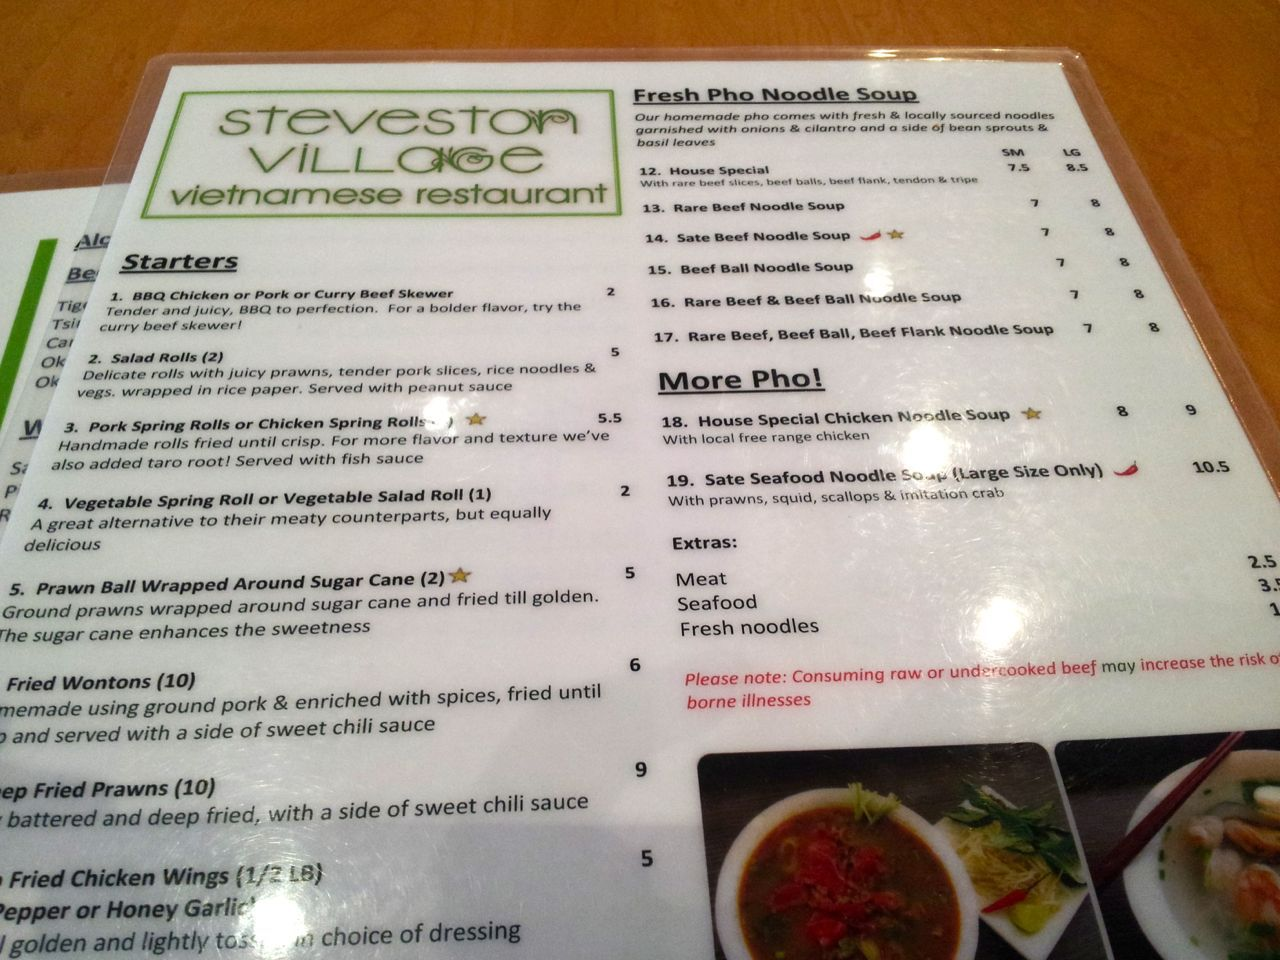 Steveston Village Vietnamese Restaurant menu